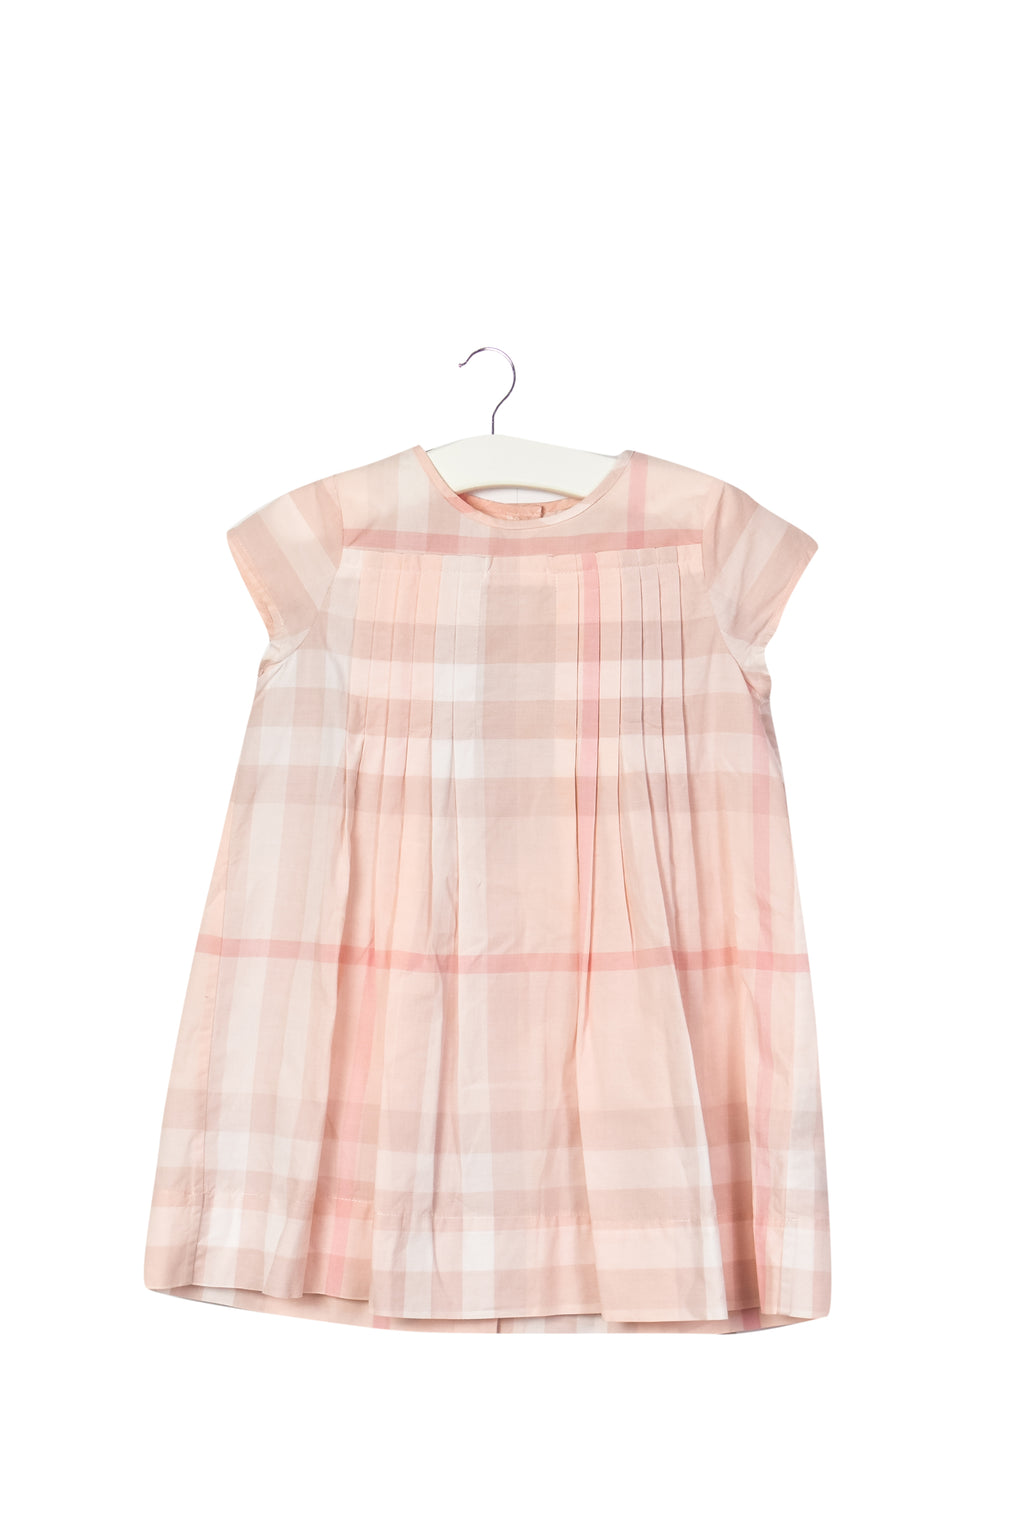 10037698 Burberry Baby~Dress and Bloomer 18M at Retykle